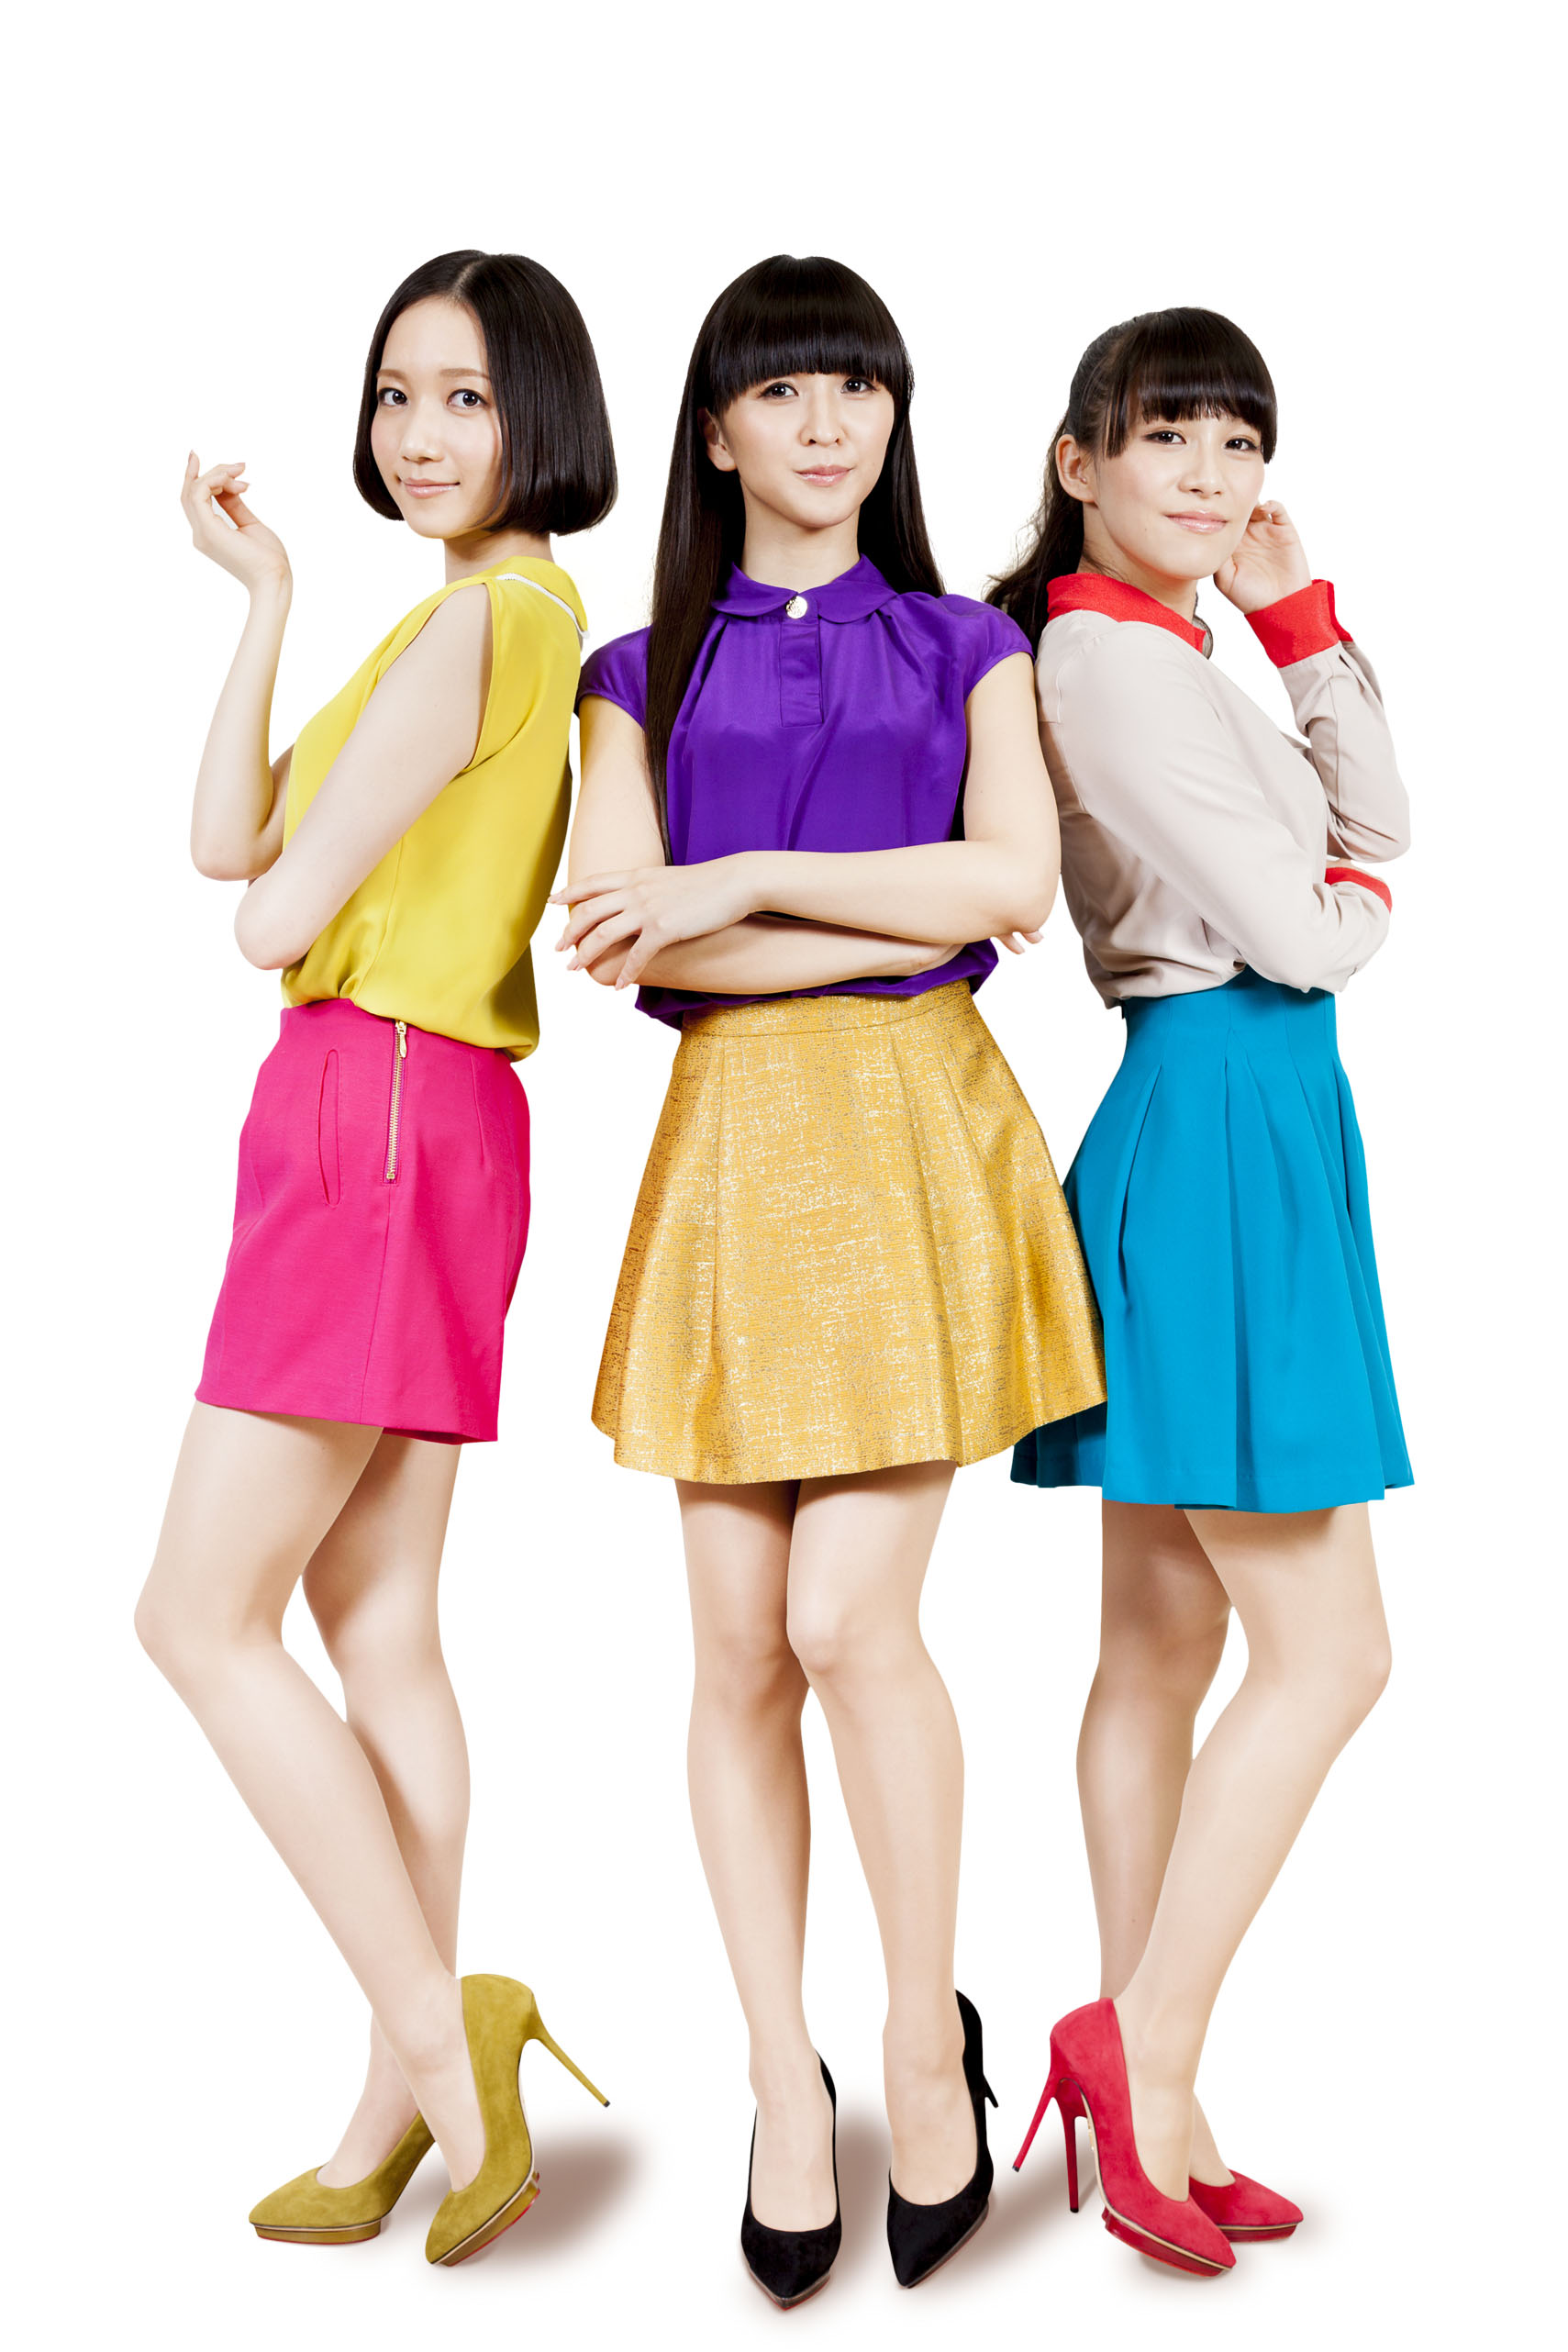 Perfume dances to No. 1 with hard-edged new album 'Level3 ...